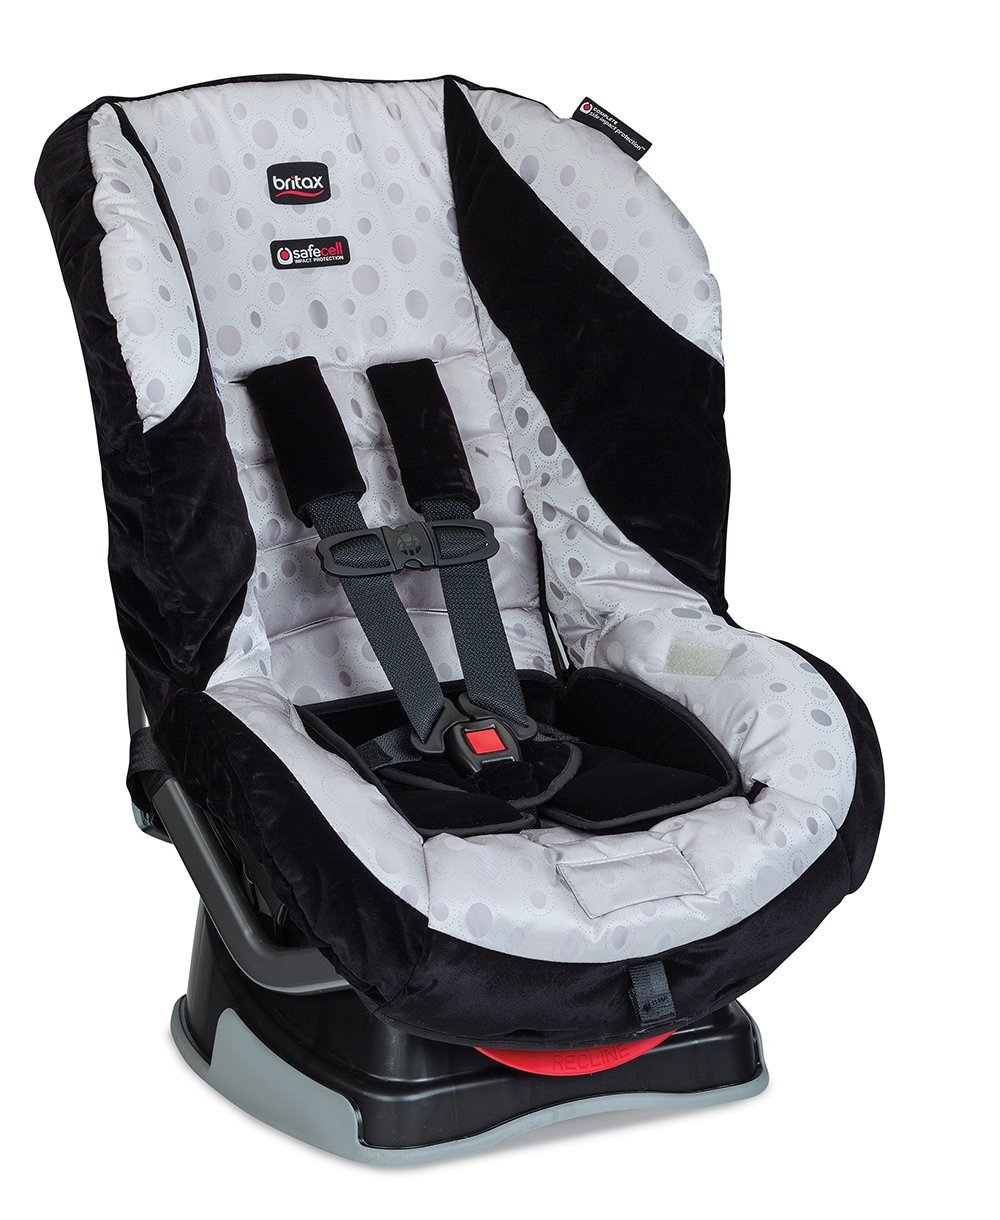 Top 10 Best Convertible Car Seats